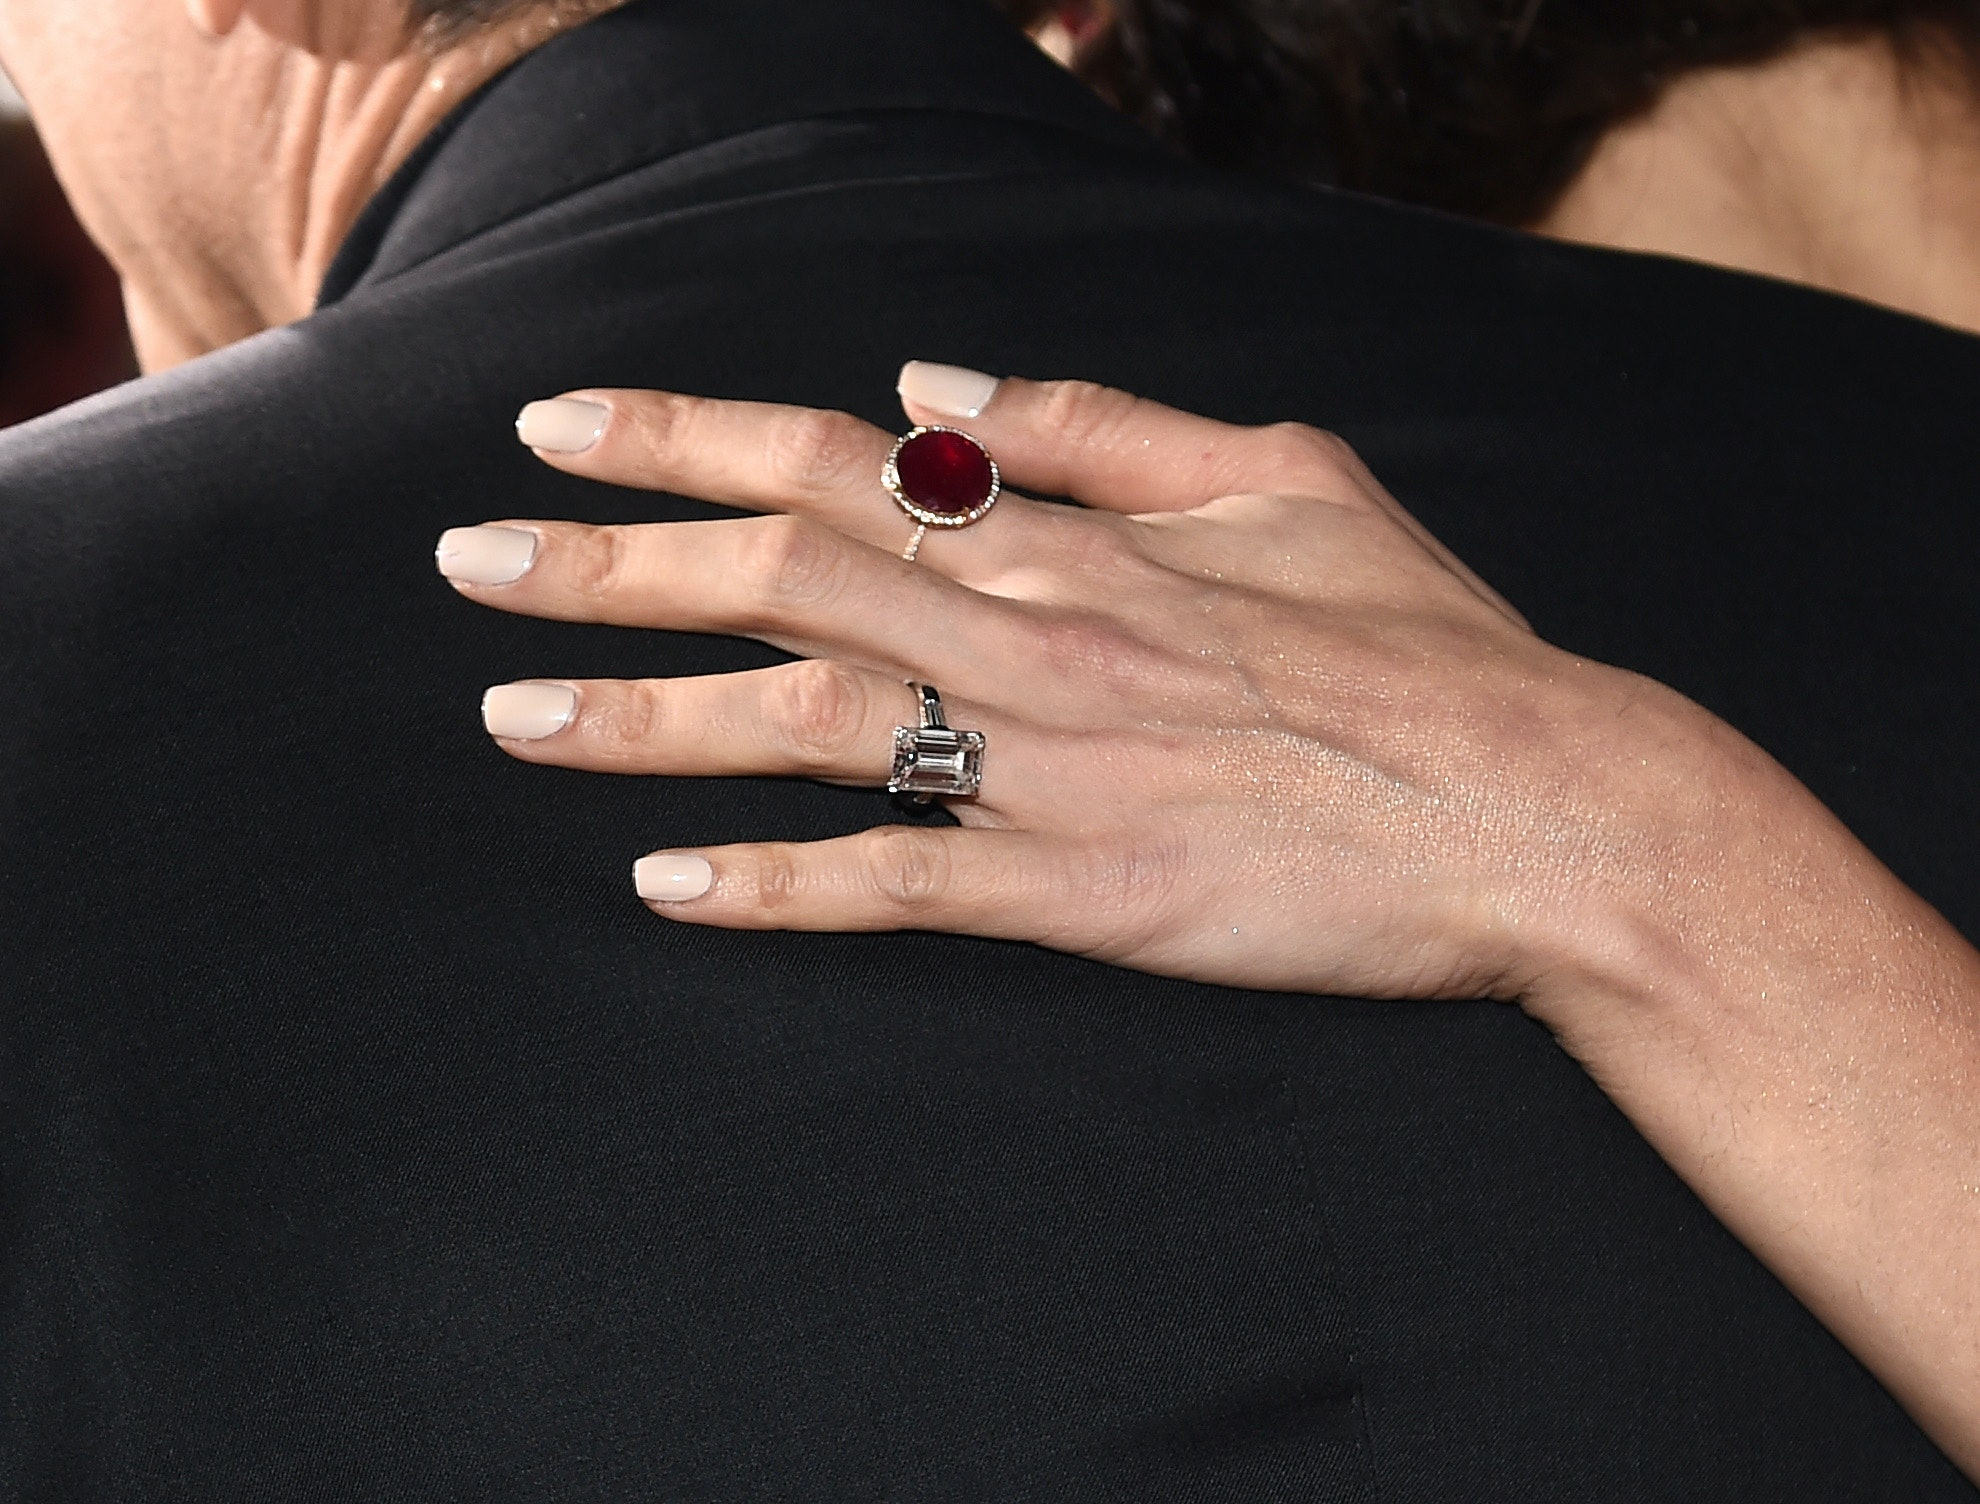 58a1624b44f2c Amal Clooney's Engagement Ring Is So Timeless — Here's Why